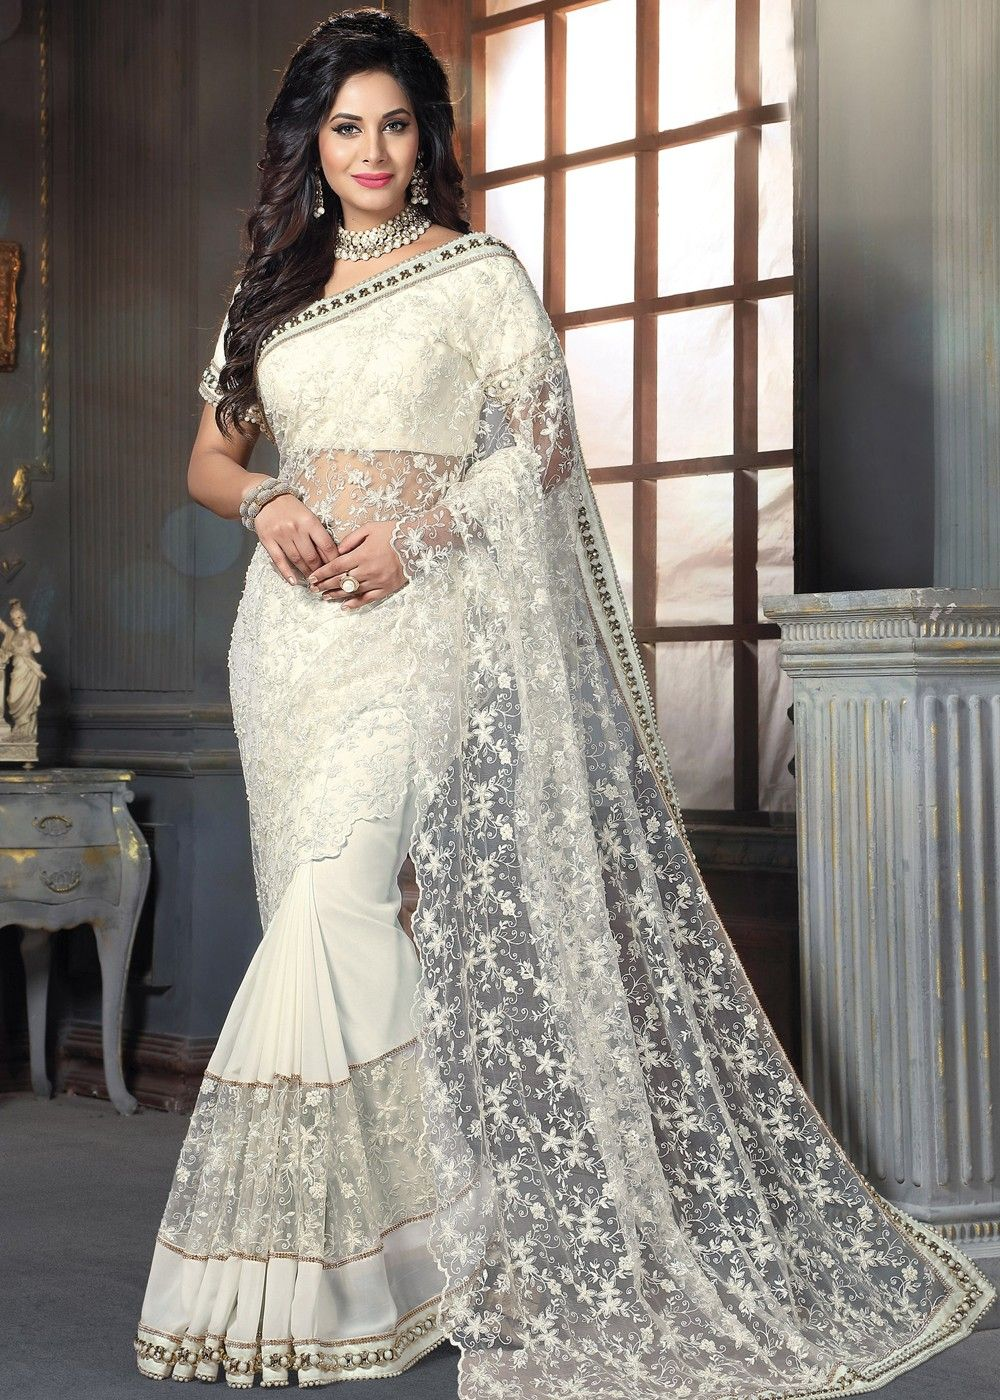 52aad2b1b3f80f Georgette and net saree in white with beautiful floral embroidery enhanced  by beaded lace throughout.